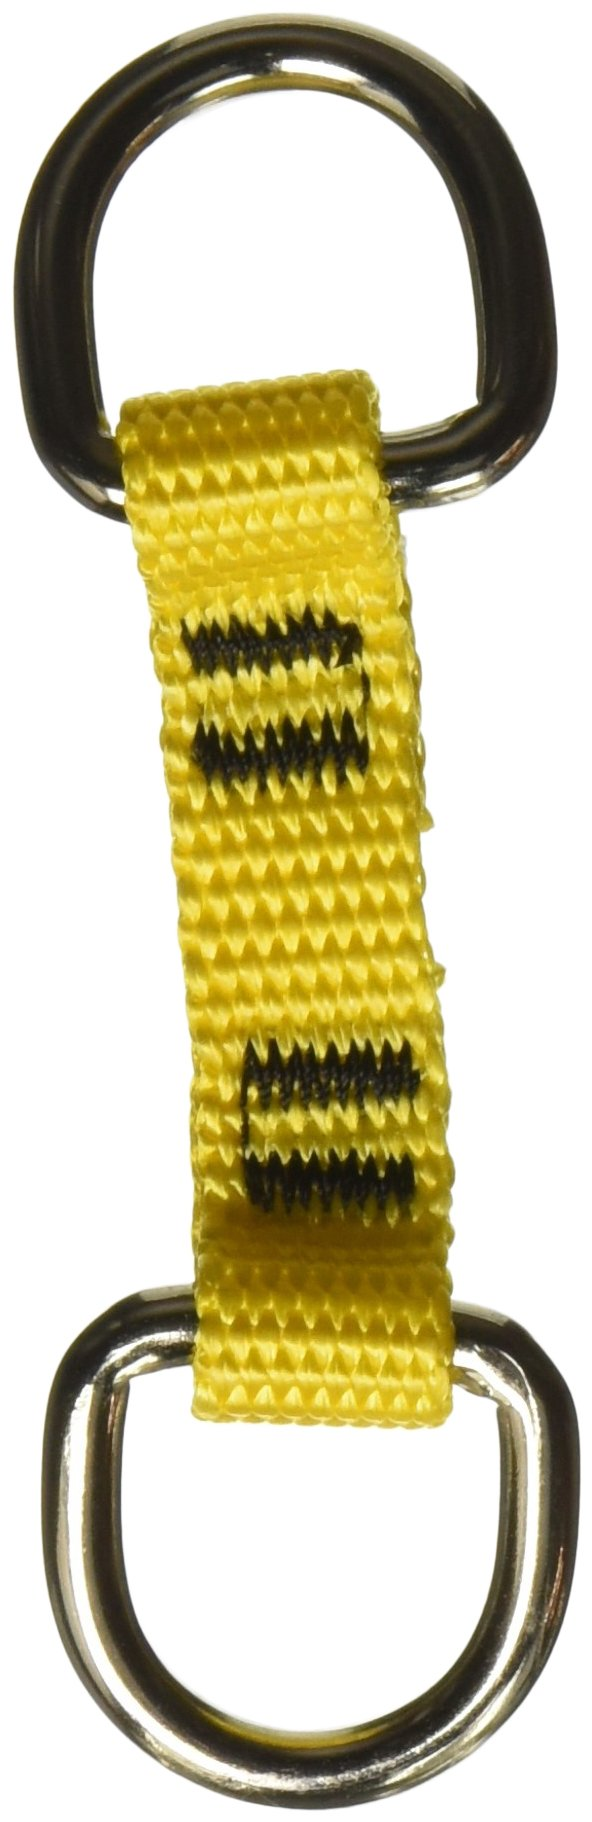 Python DDR-SMALL-10PK Python Dual D-Ring Attachment-Small (10 Pack)